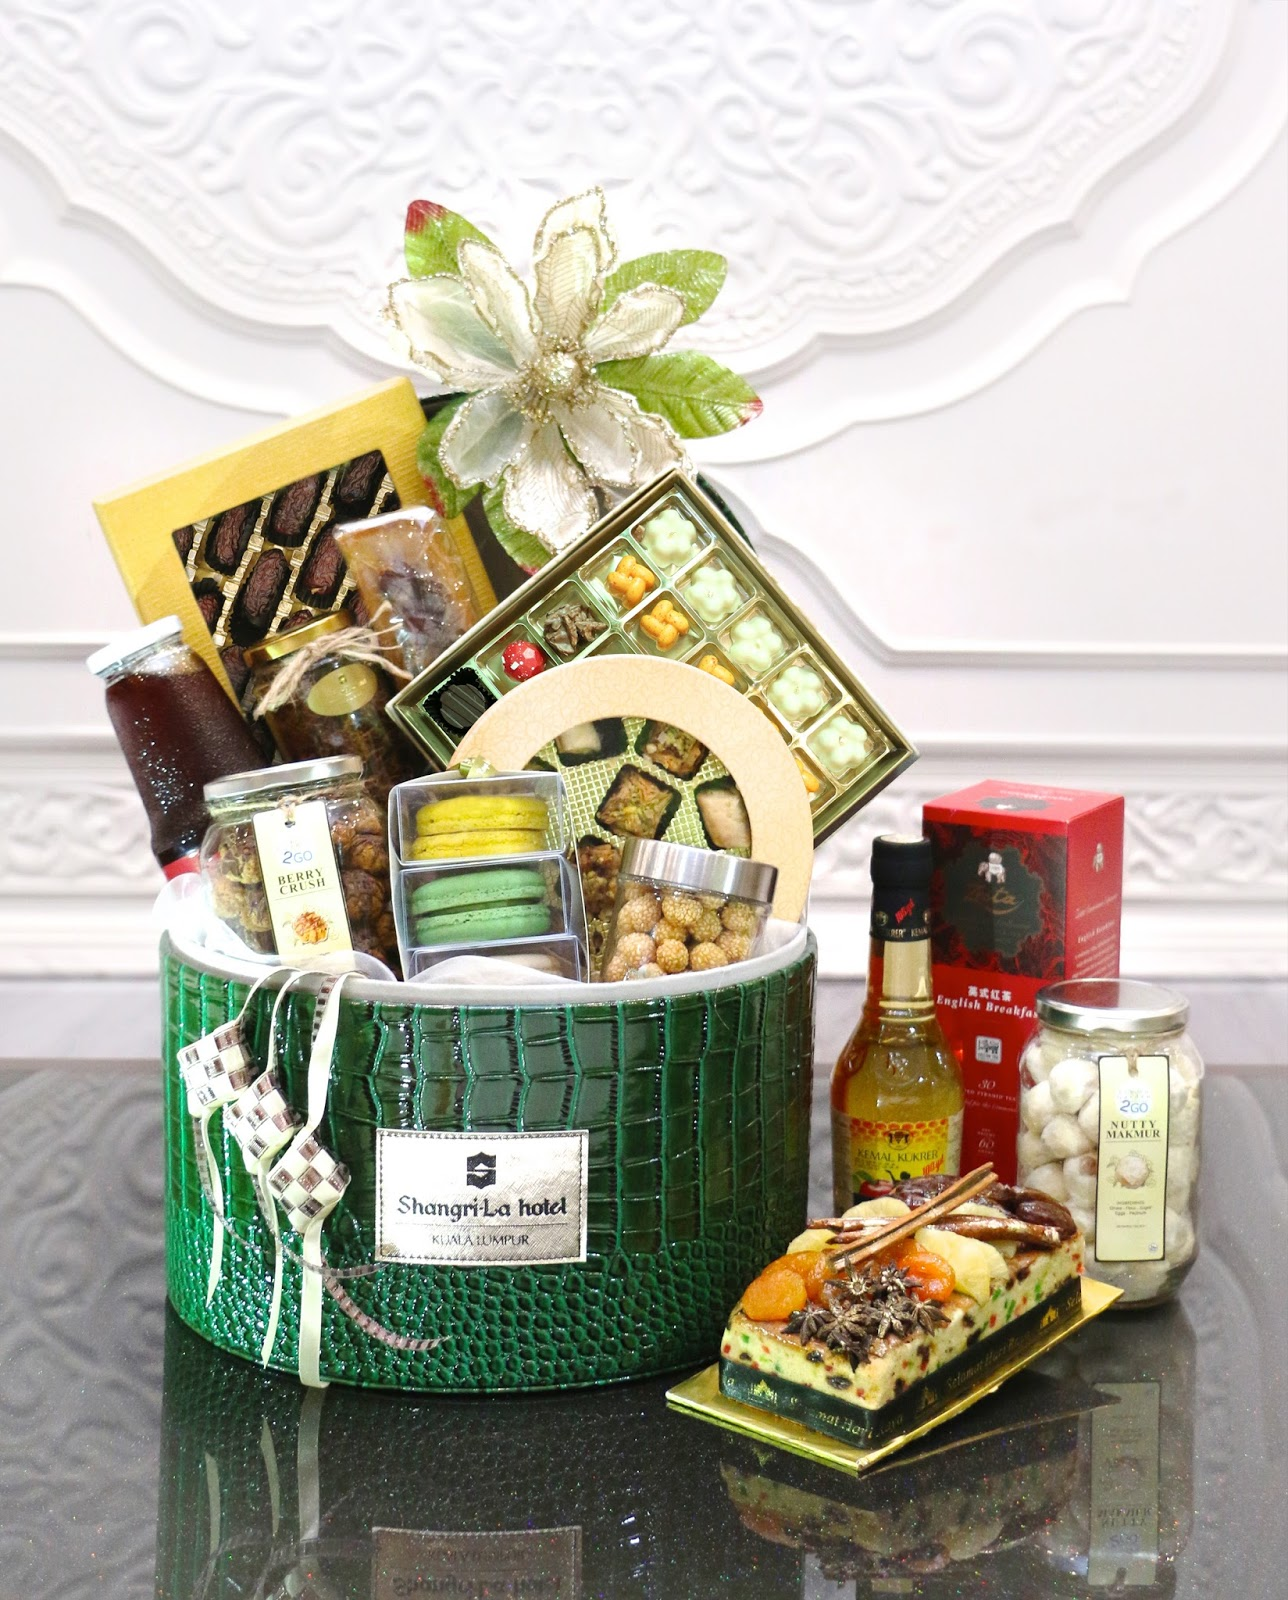 Kee Hua Chee Live The Best Hari Raya Hampers Are From